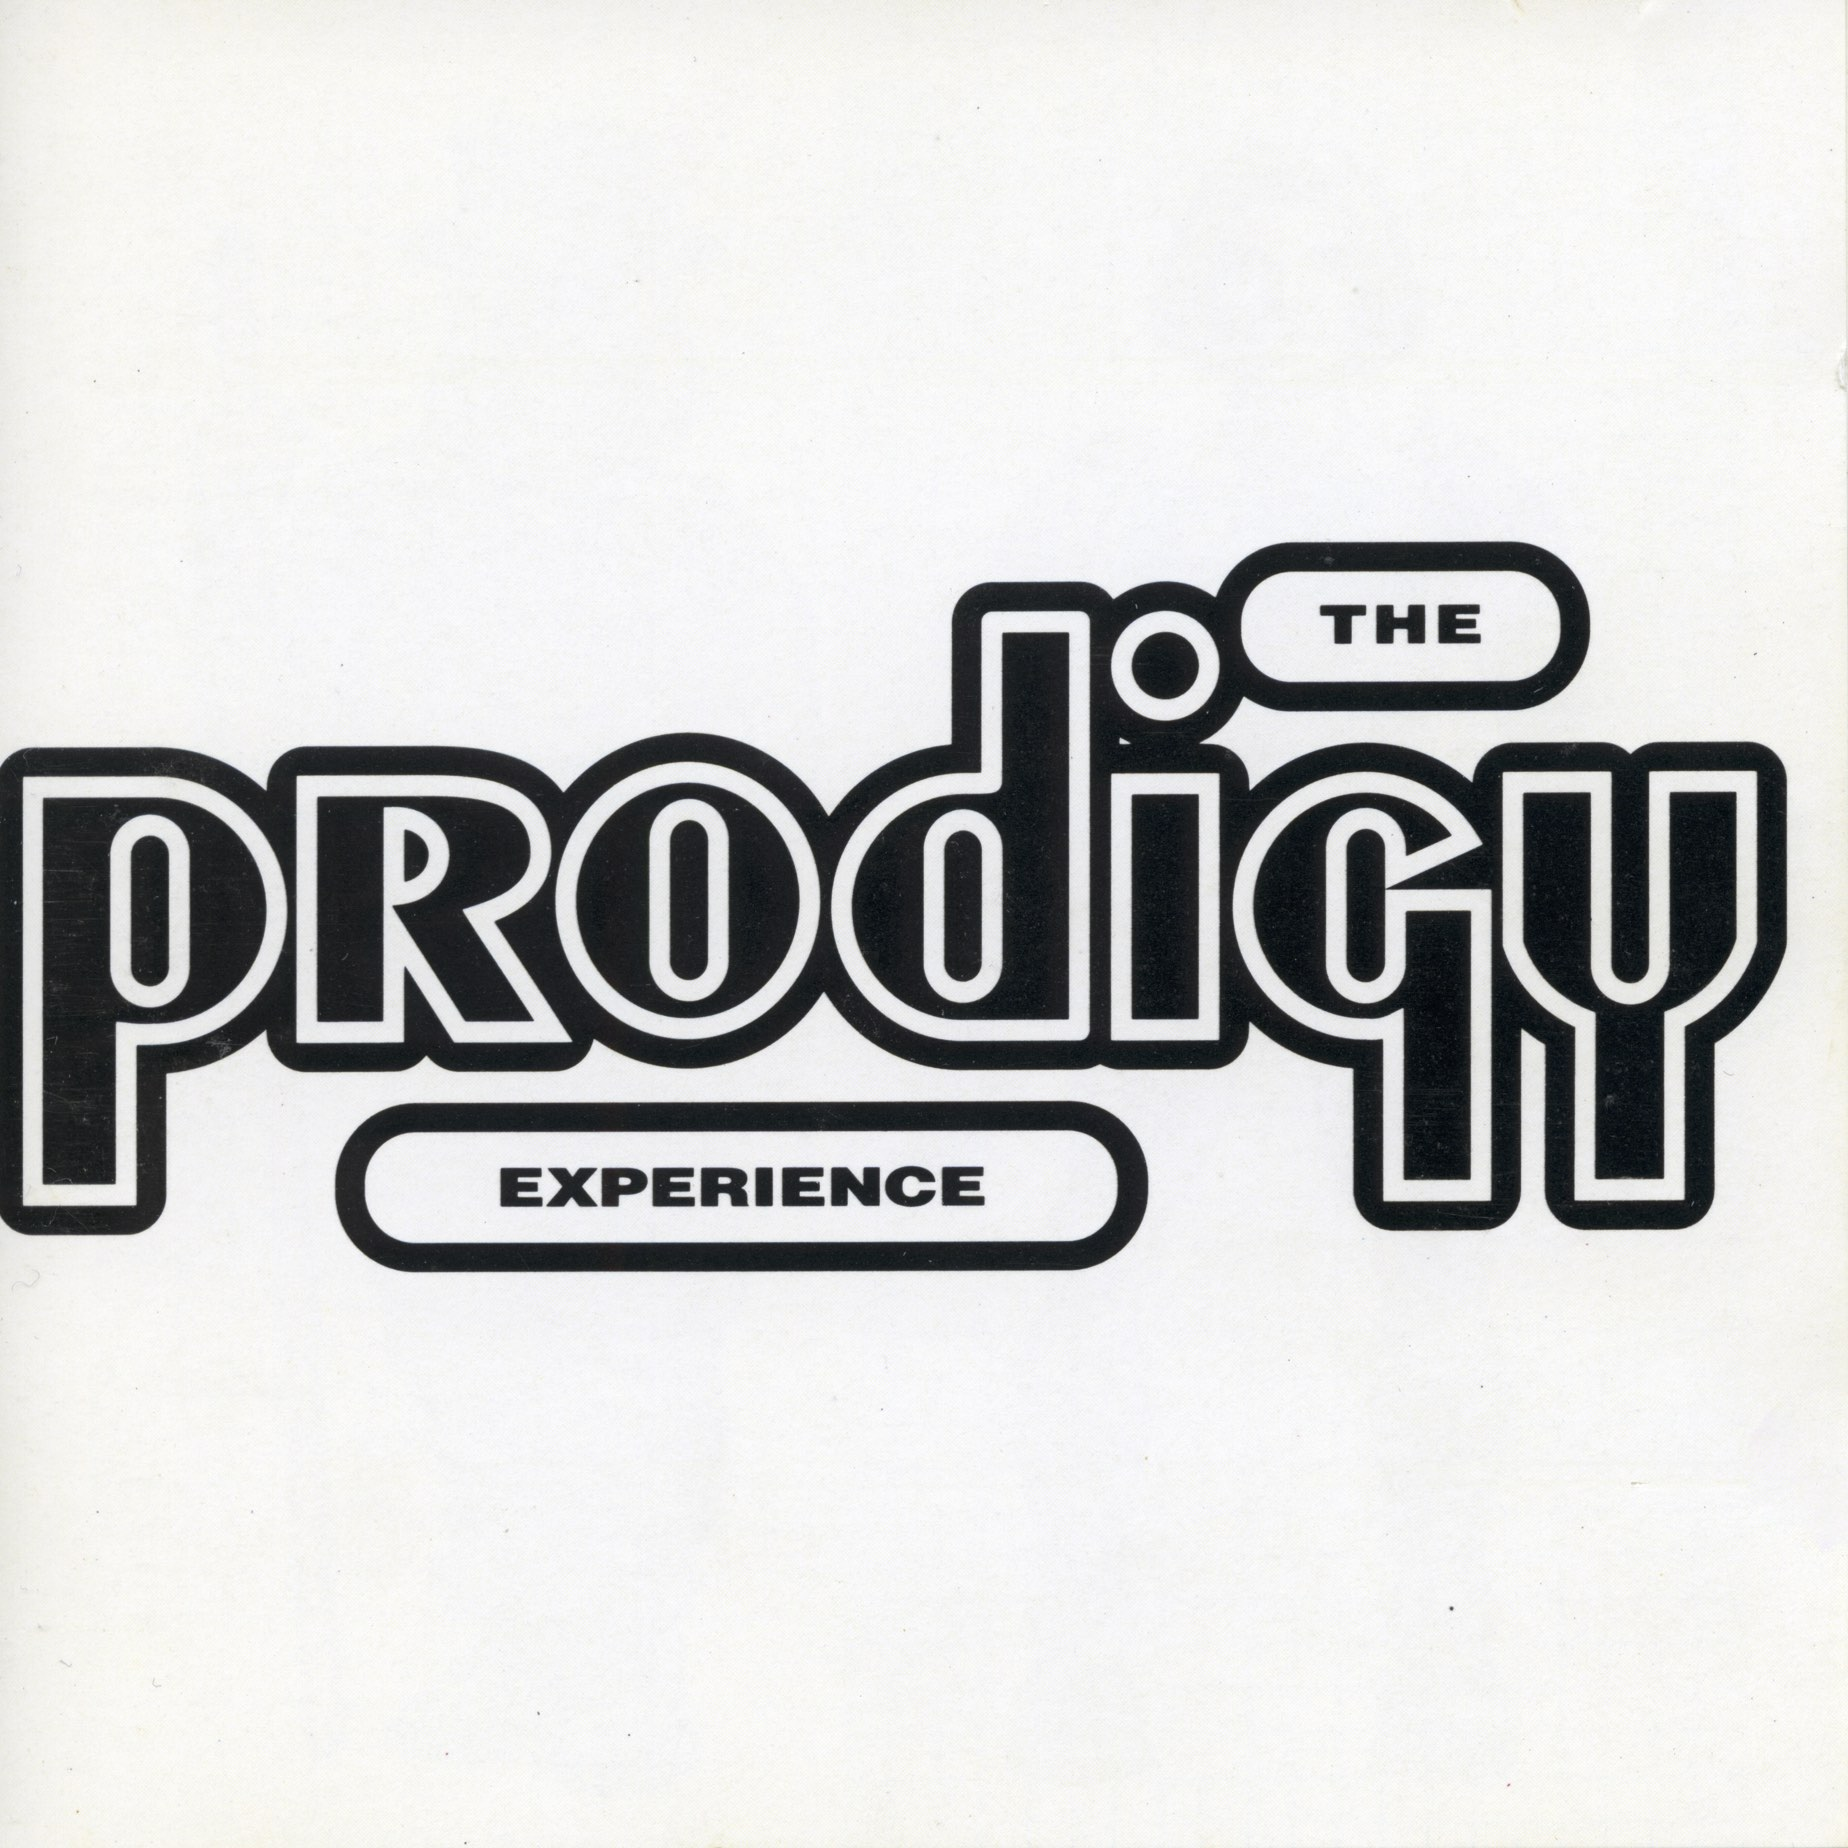 1994 - The Prodigy